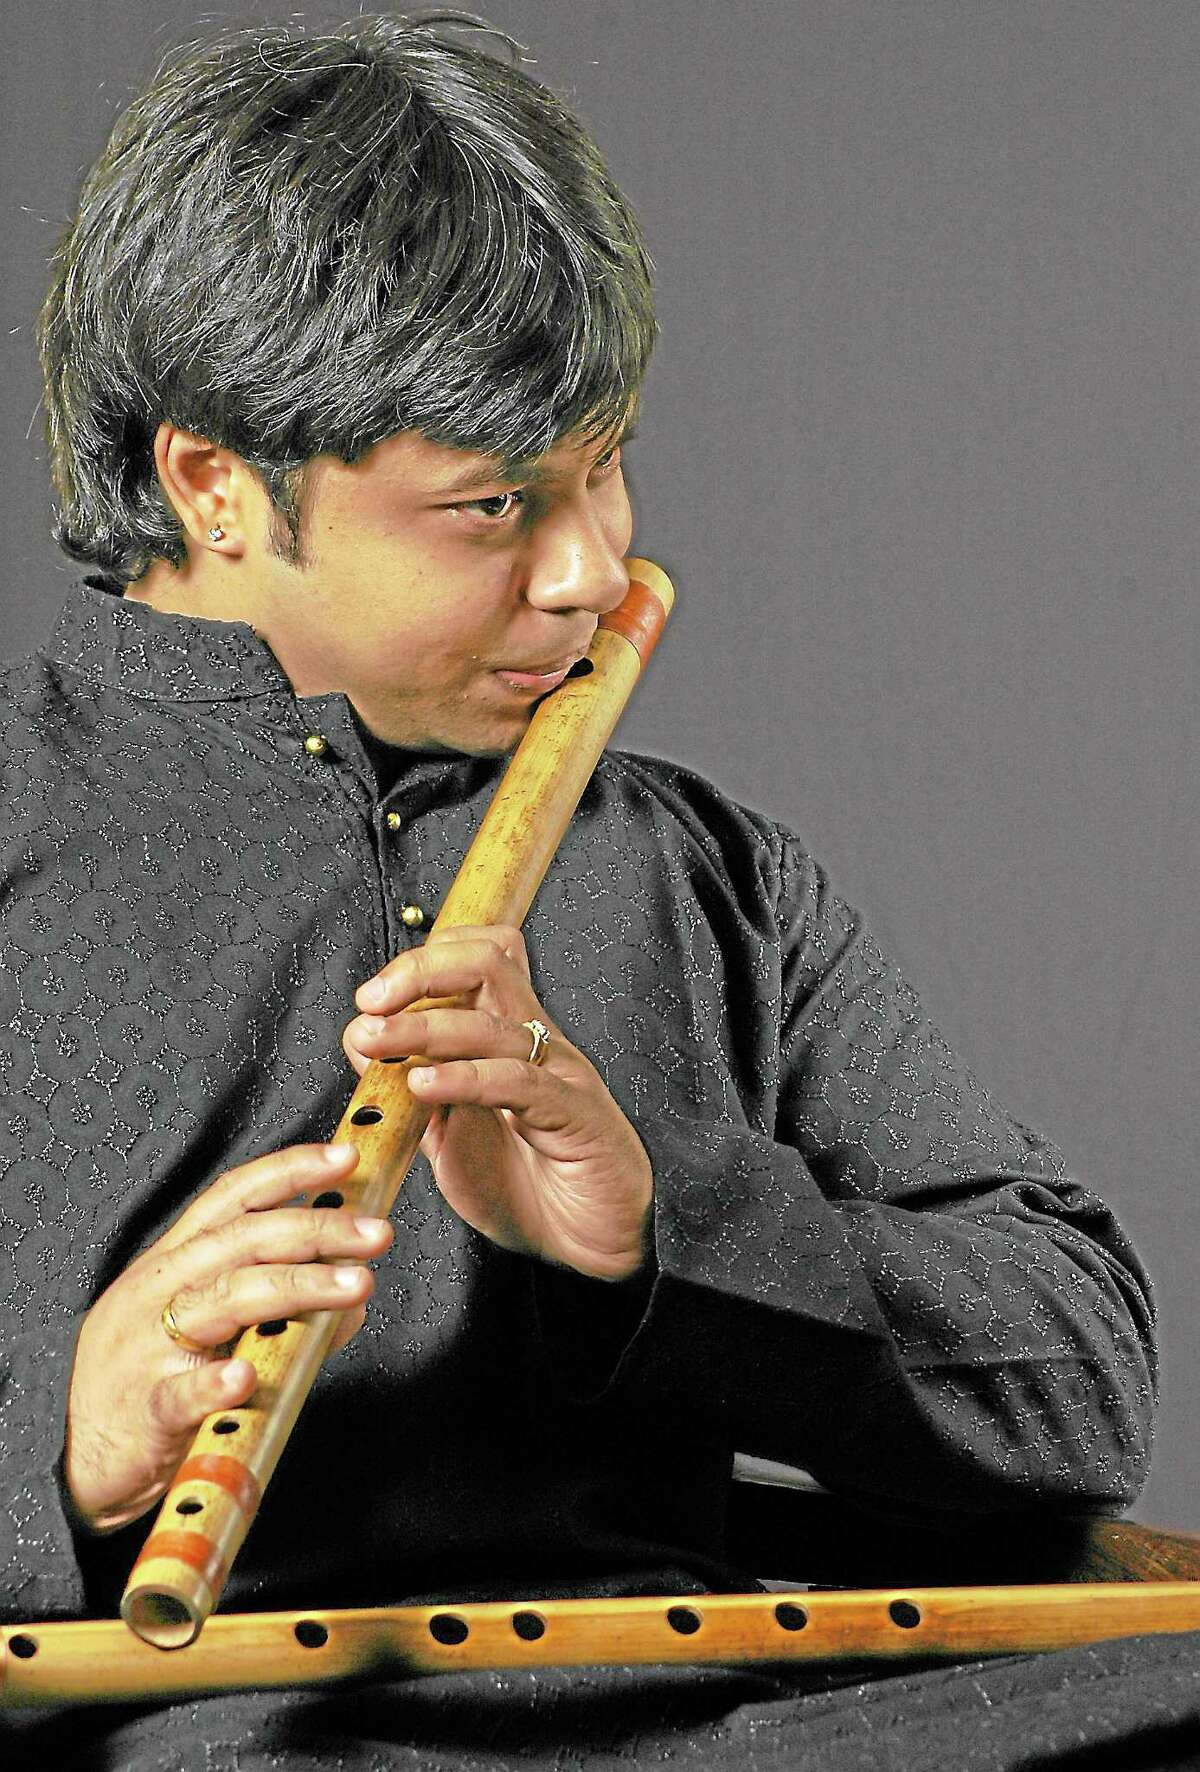 Submitted photo - Shashank Subramanyam/CFA is considered one of the best bamboo flute artists in Indian classical music. His performance is Saturday, Oct. 12 in Crowell Concert Hall at Wesleyan University.